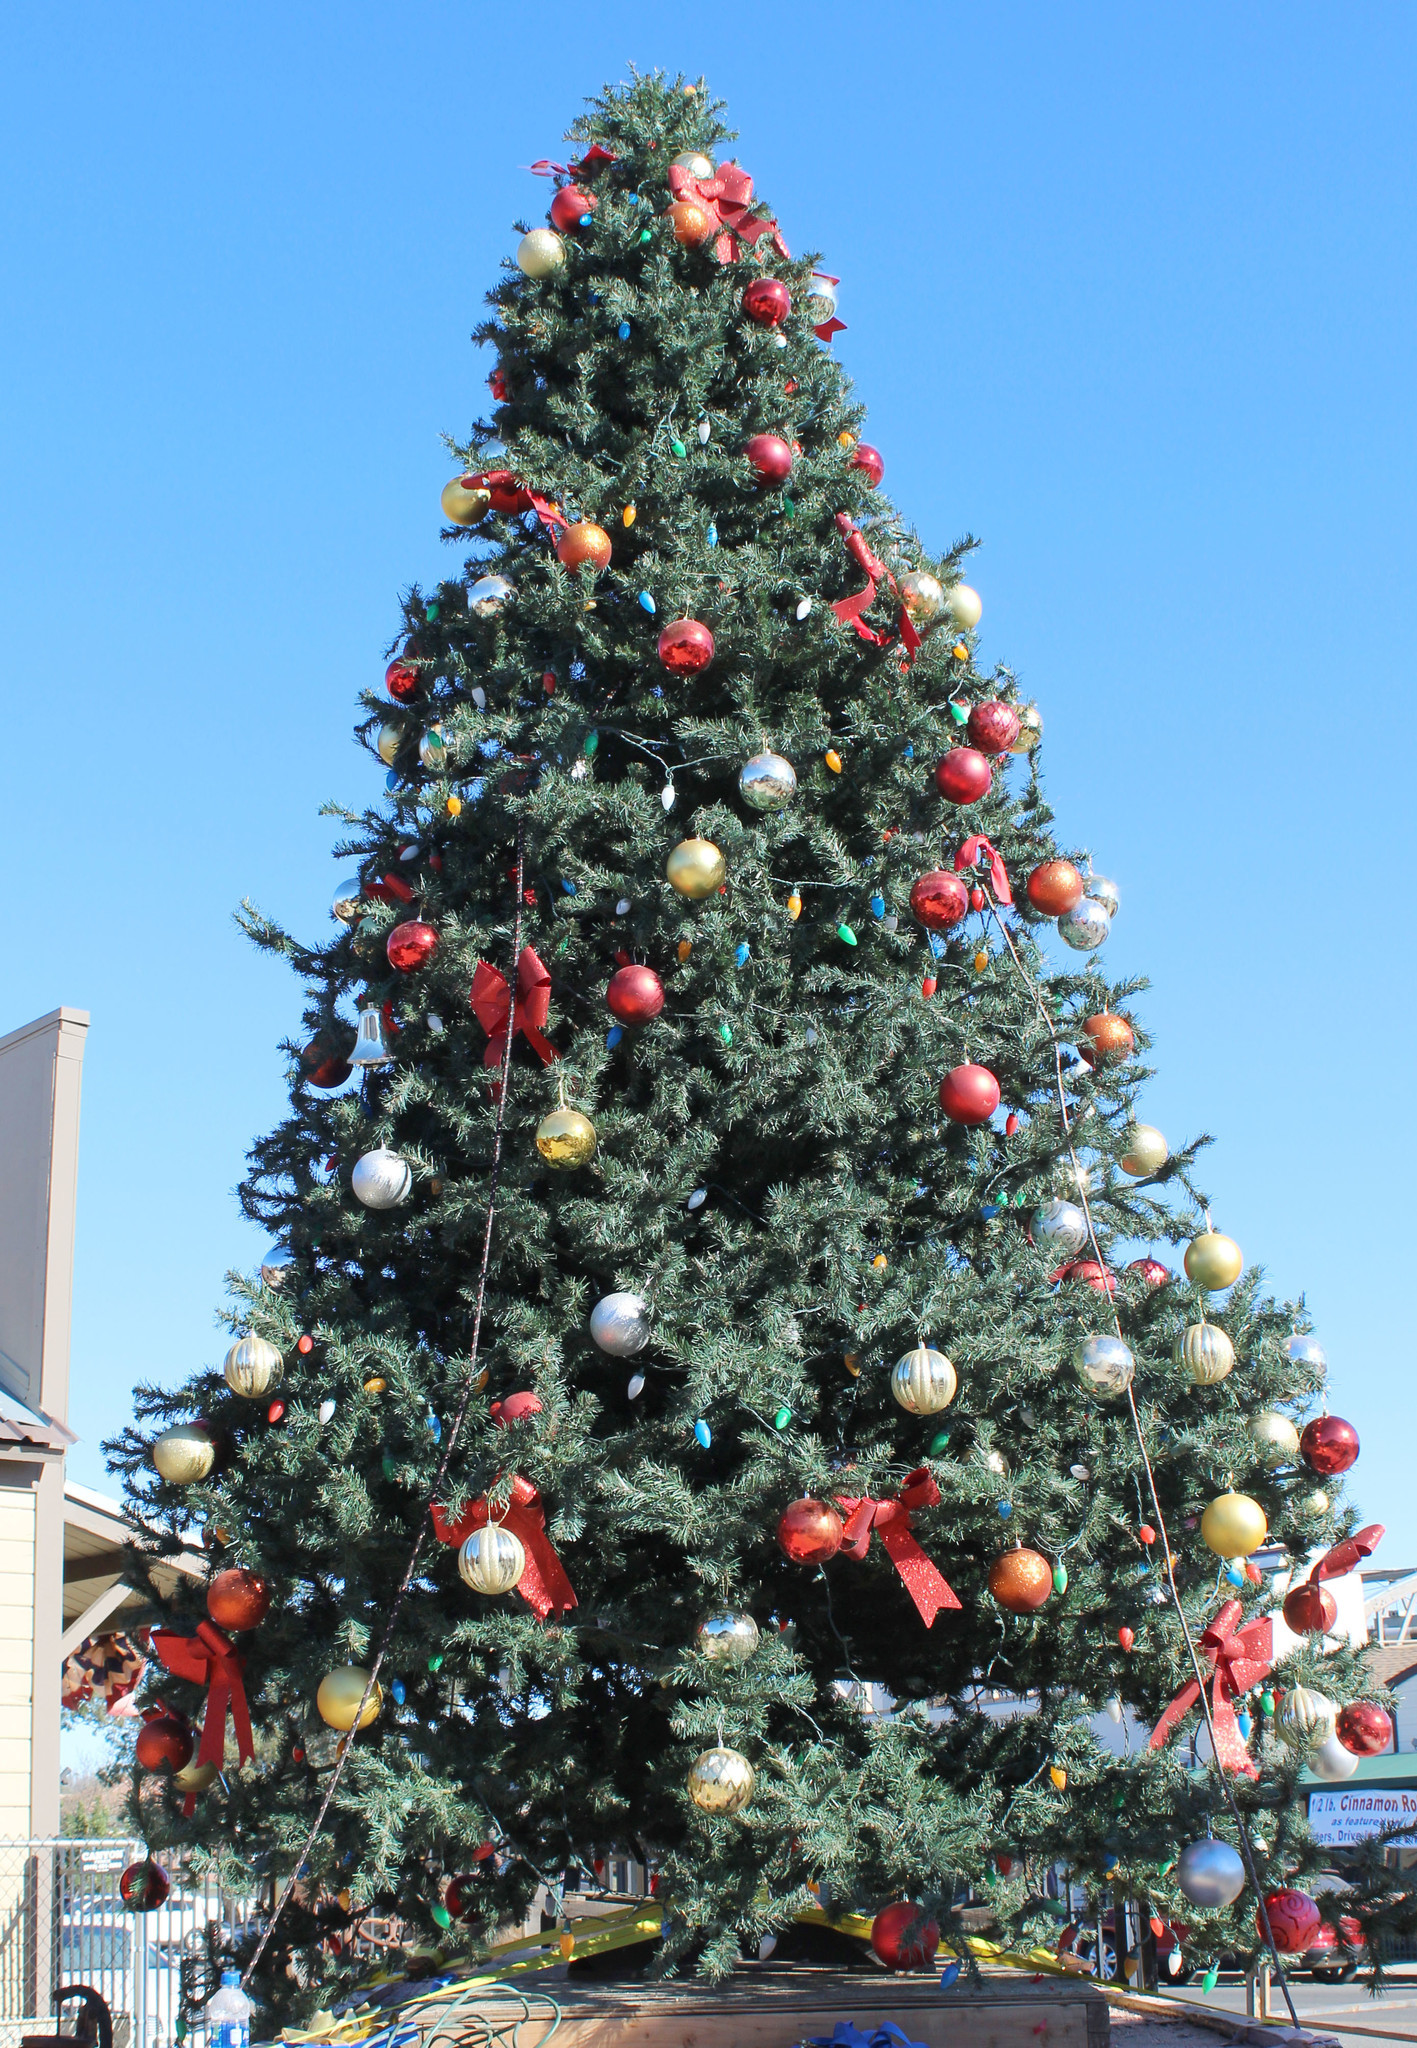 Santa Claus will be in town to light Ramona's Christmas tree at 6 p.m. on Saturday.